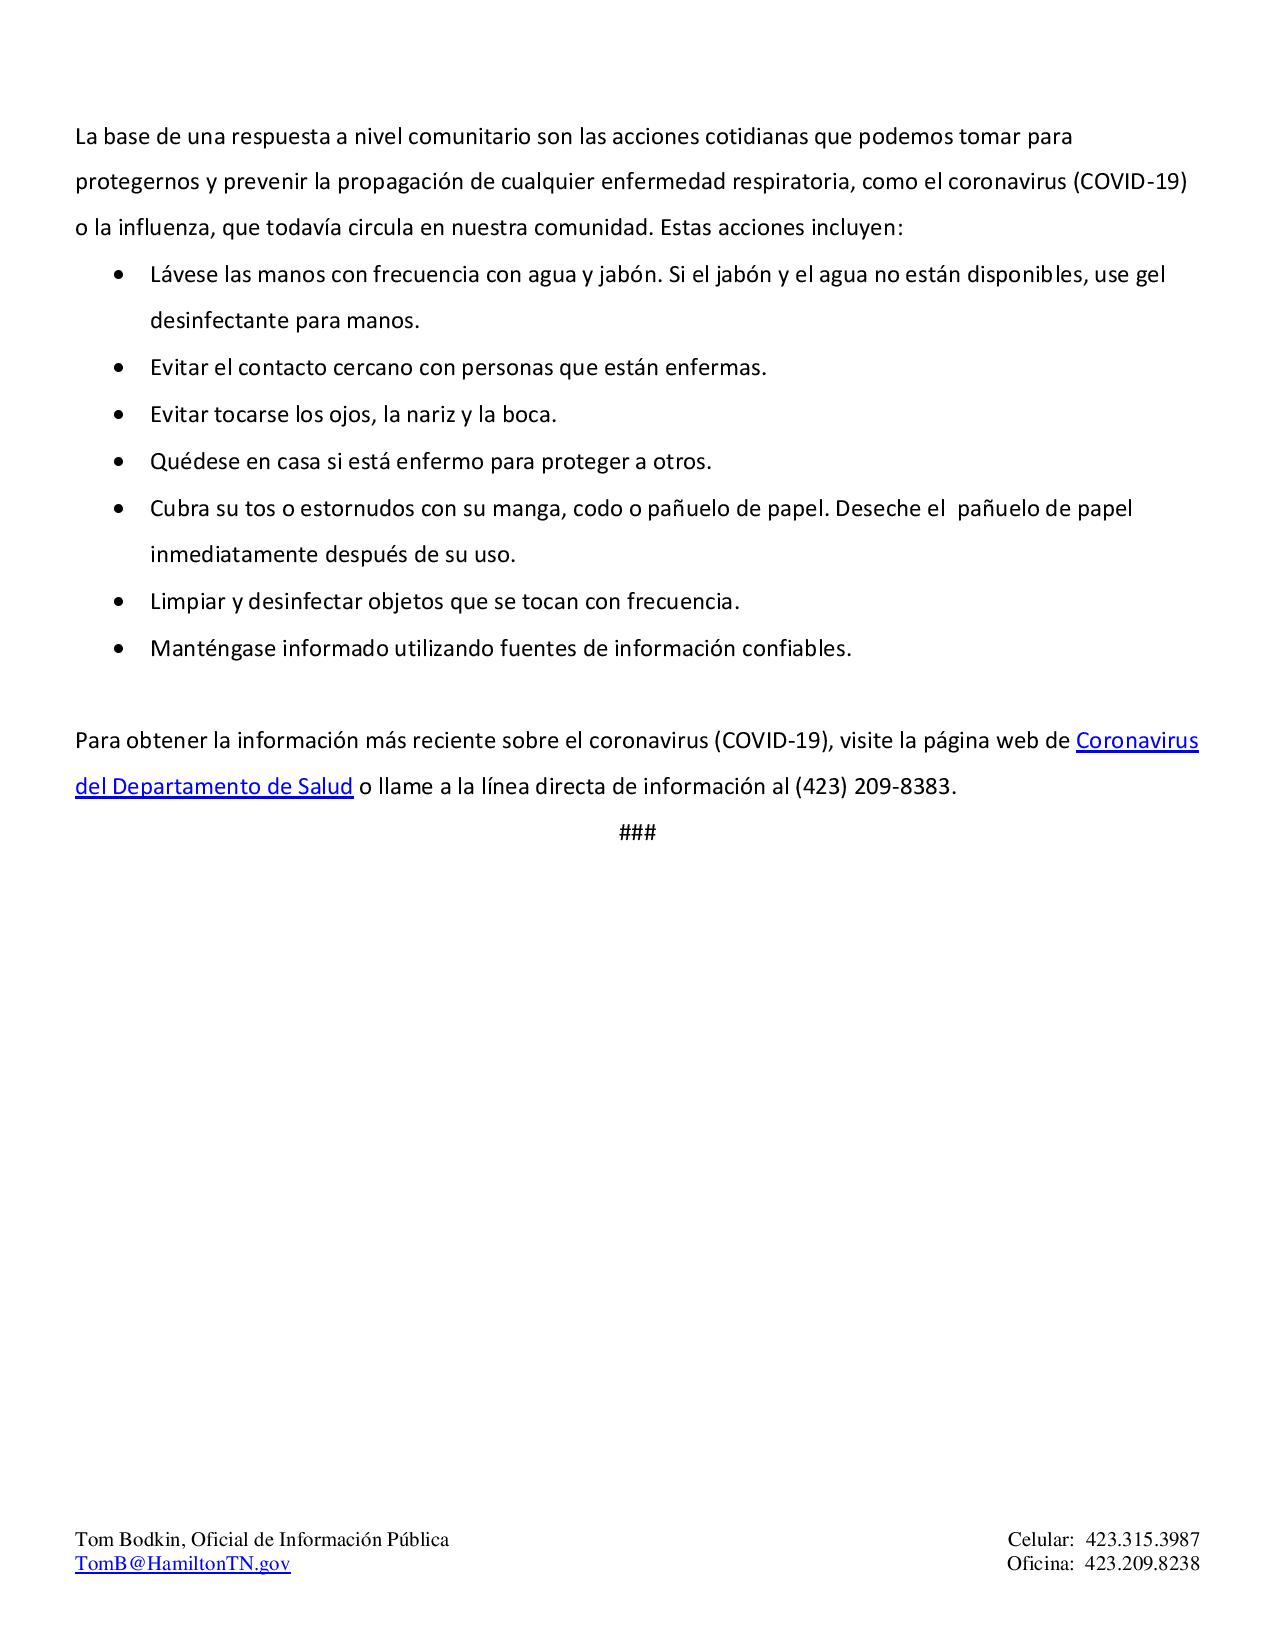 Press release_coronavirus_rev6 (Spanish)-page-002